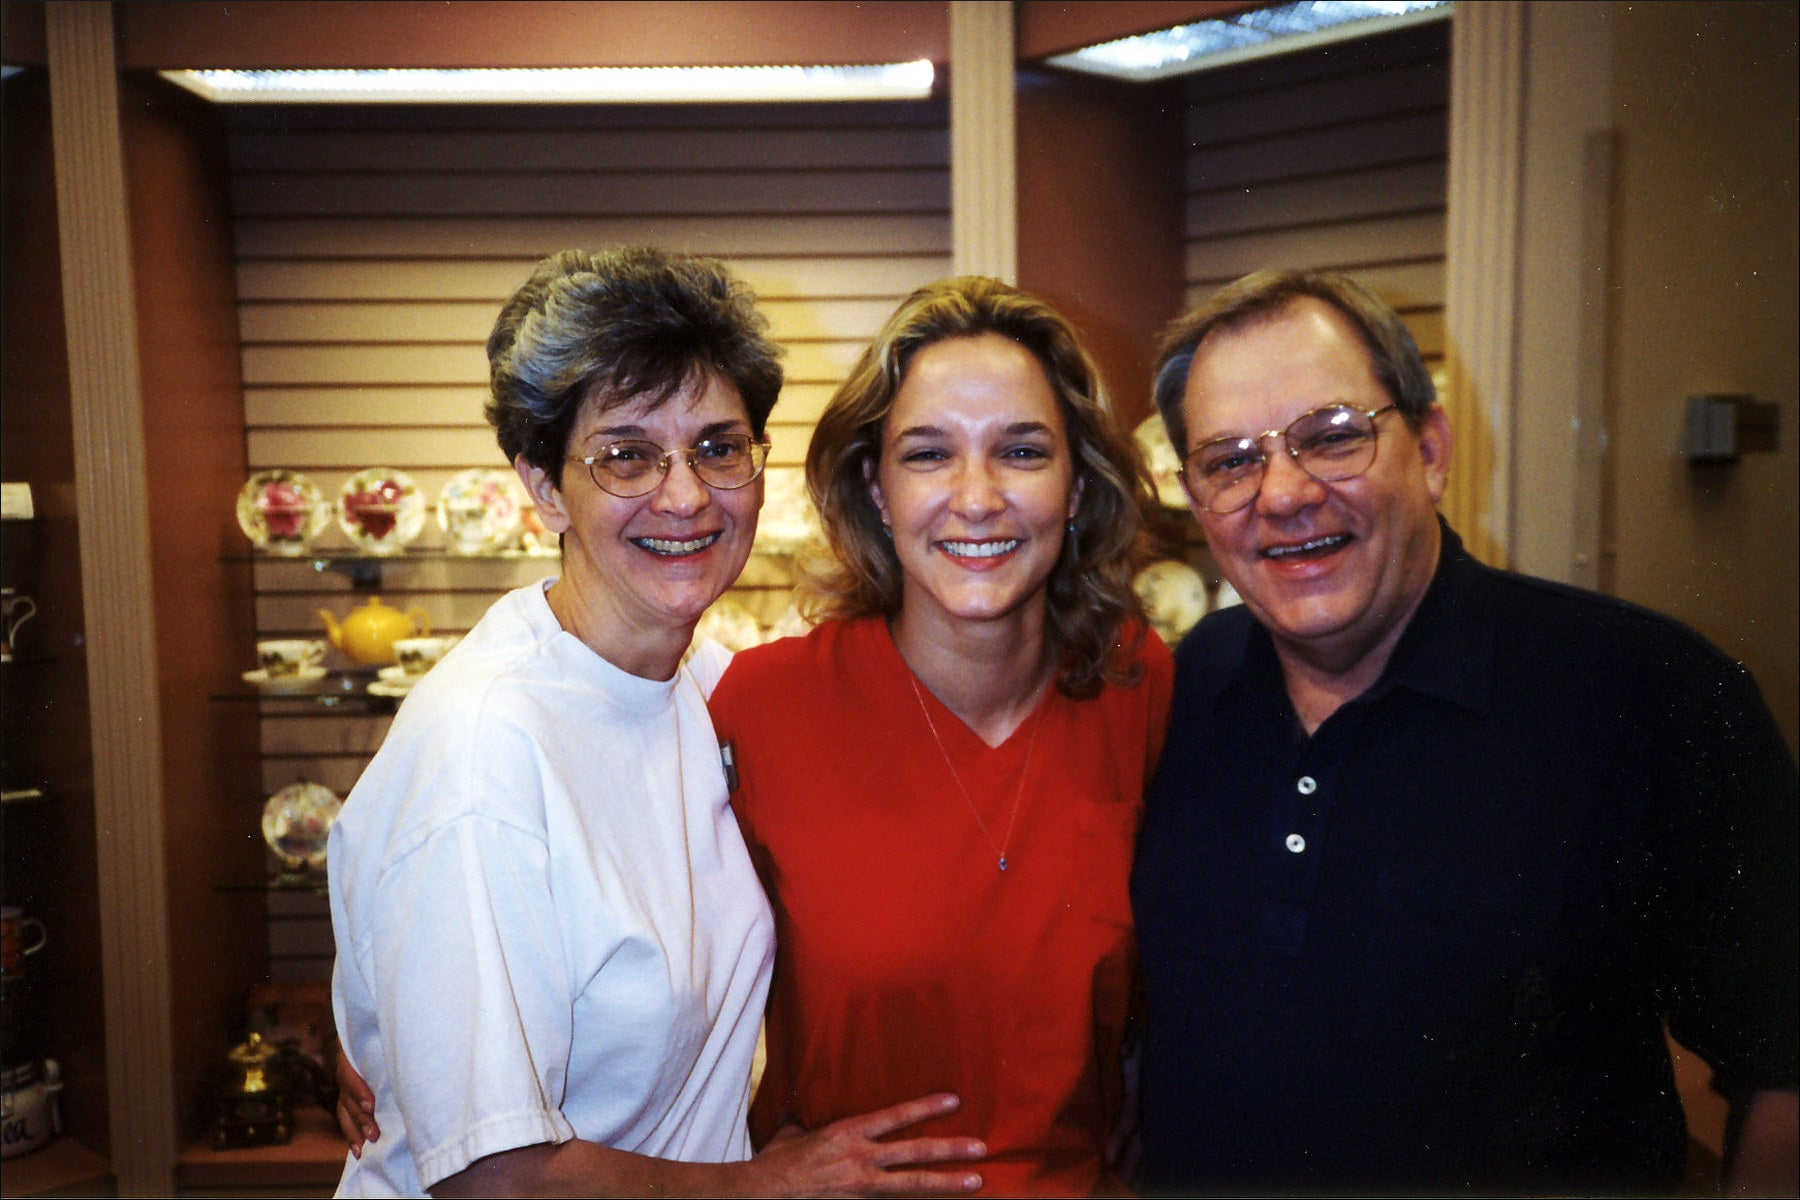 The Clark family, at the Coffee Classics store, 1998: Sharon, Carrie, and John.